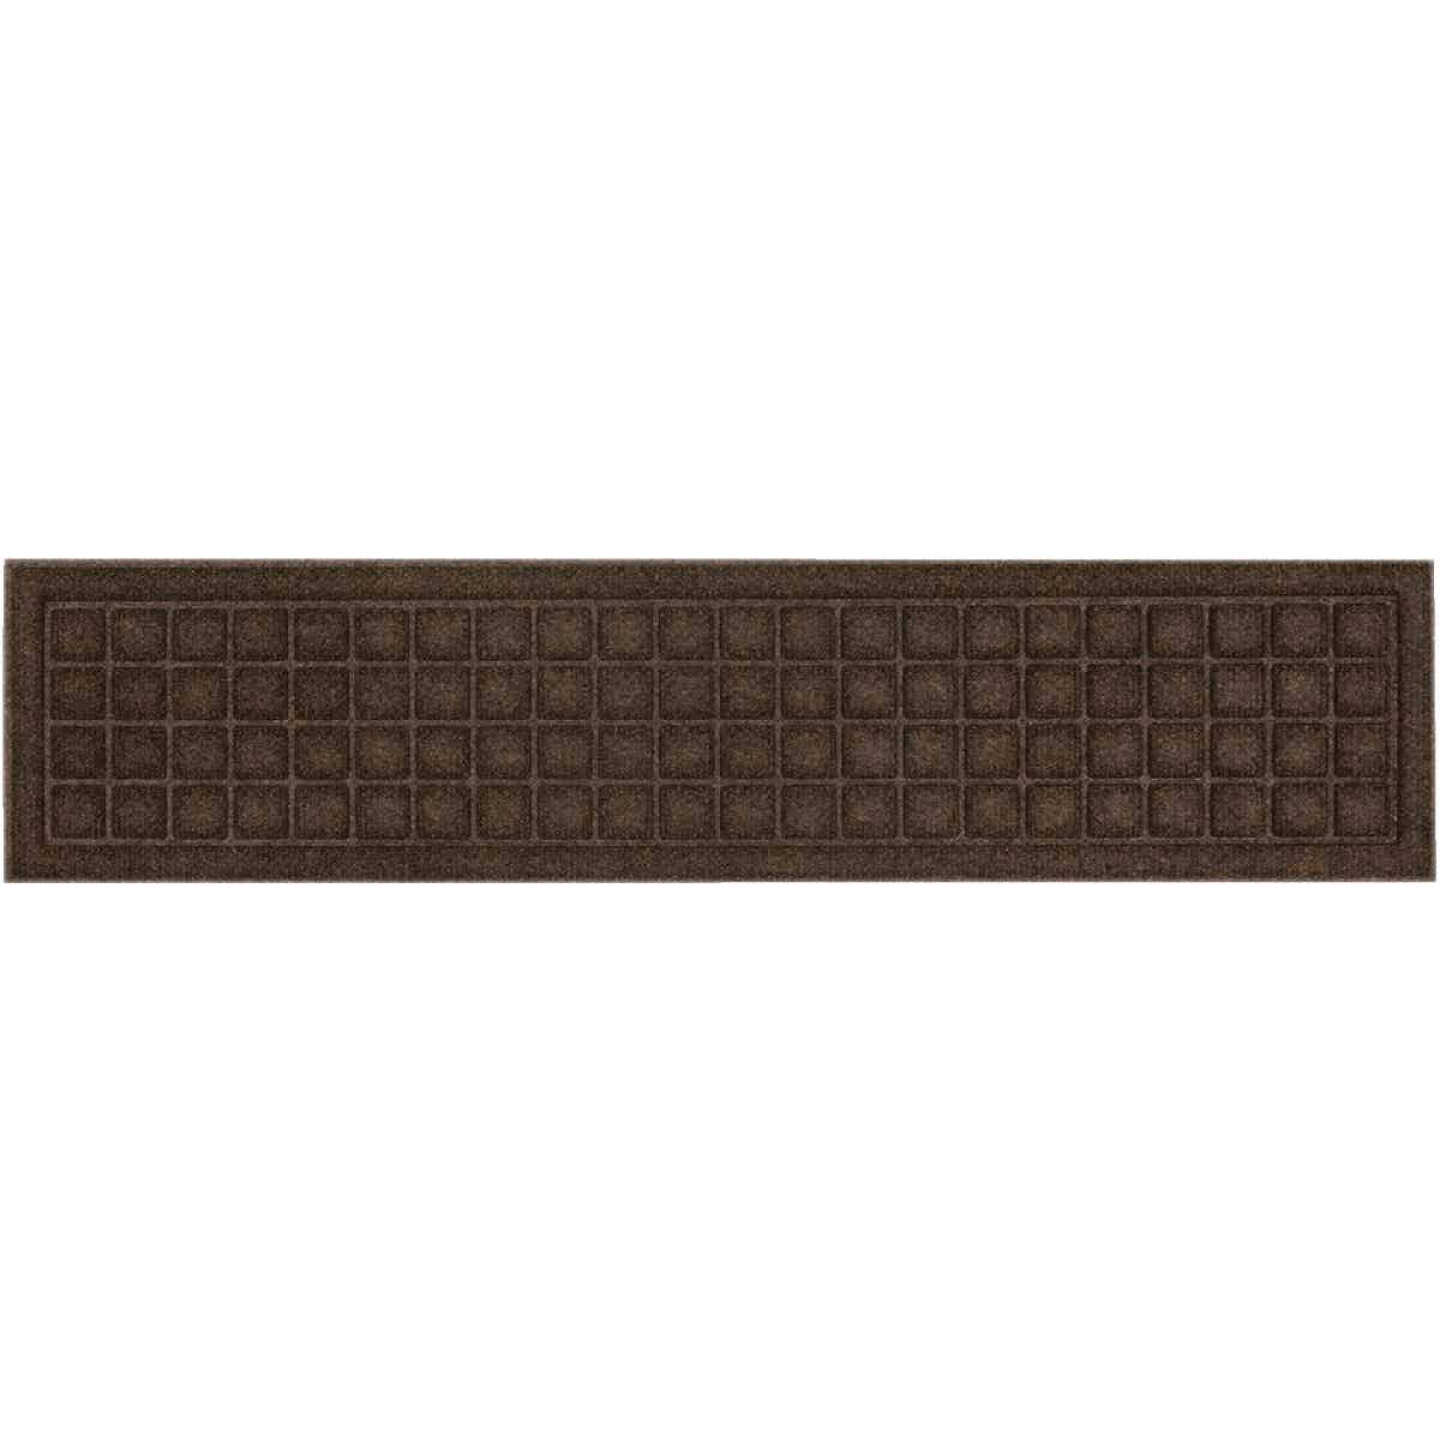 Mohawk Home Square Expressions Brown 8 In. x 36 In. Recycled Rubber Stair Tread Image 2